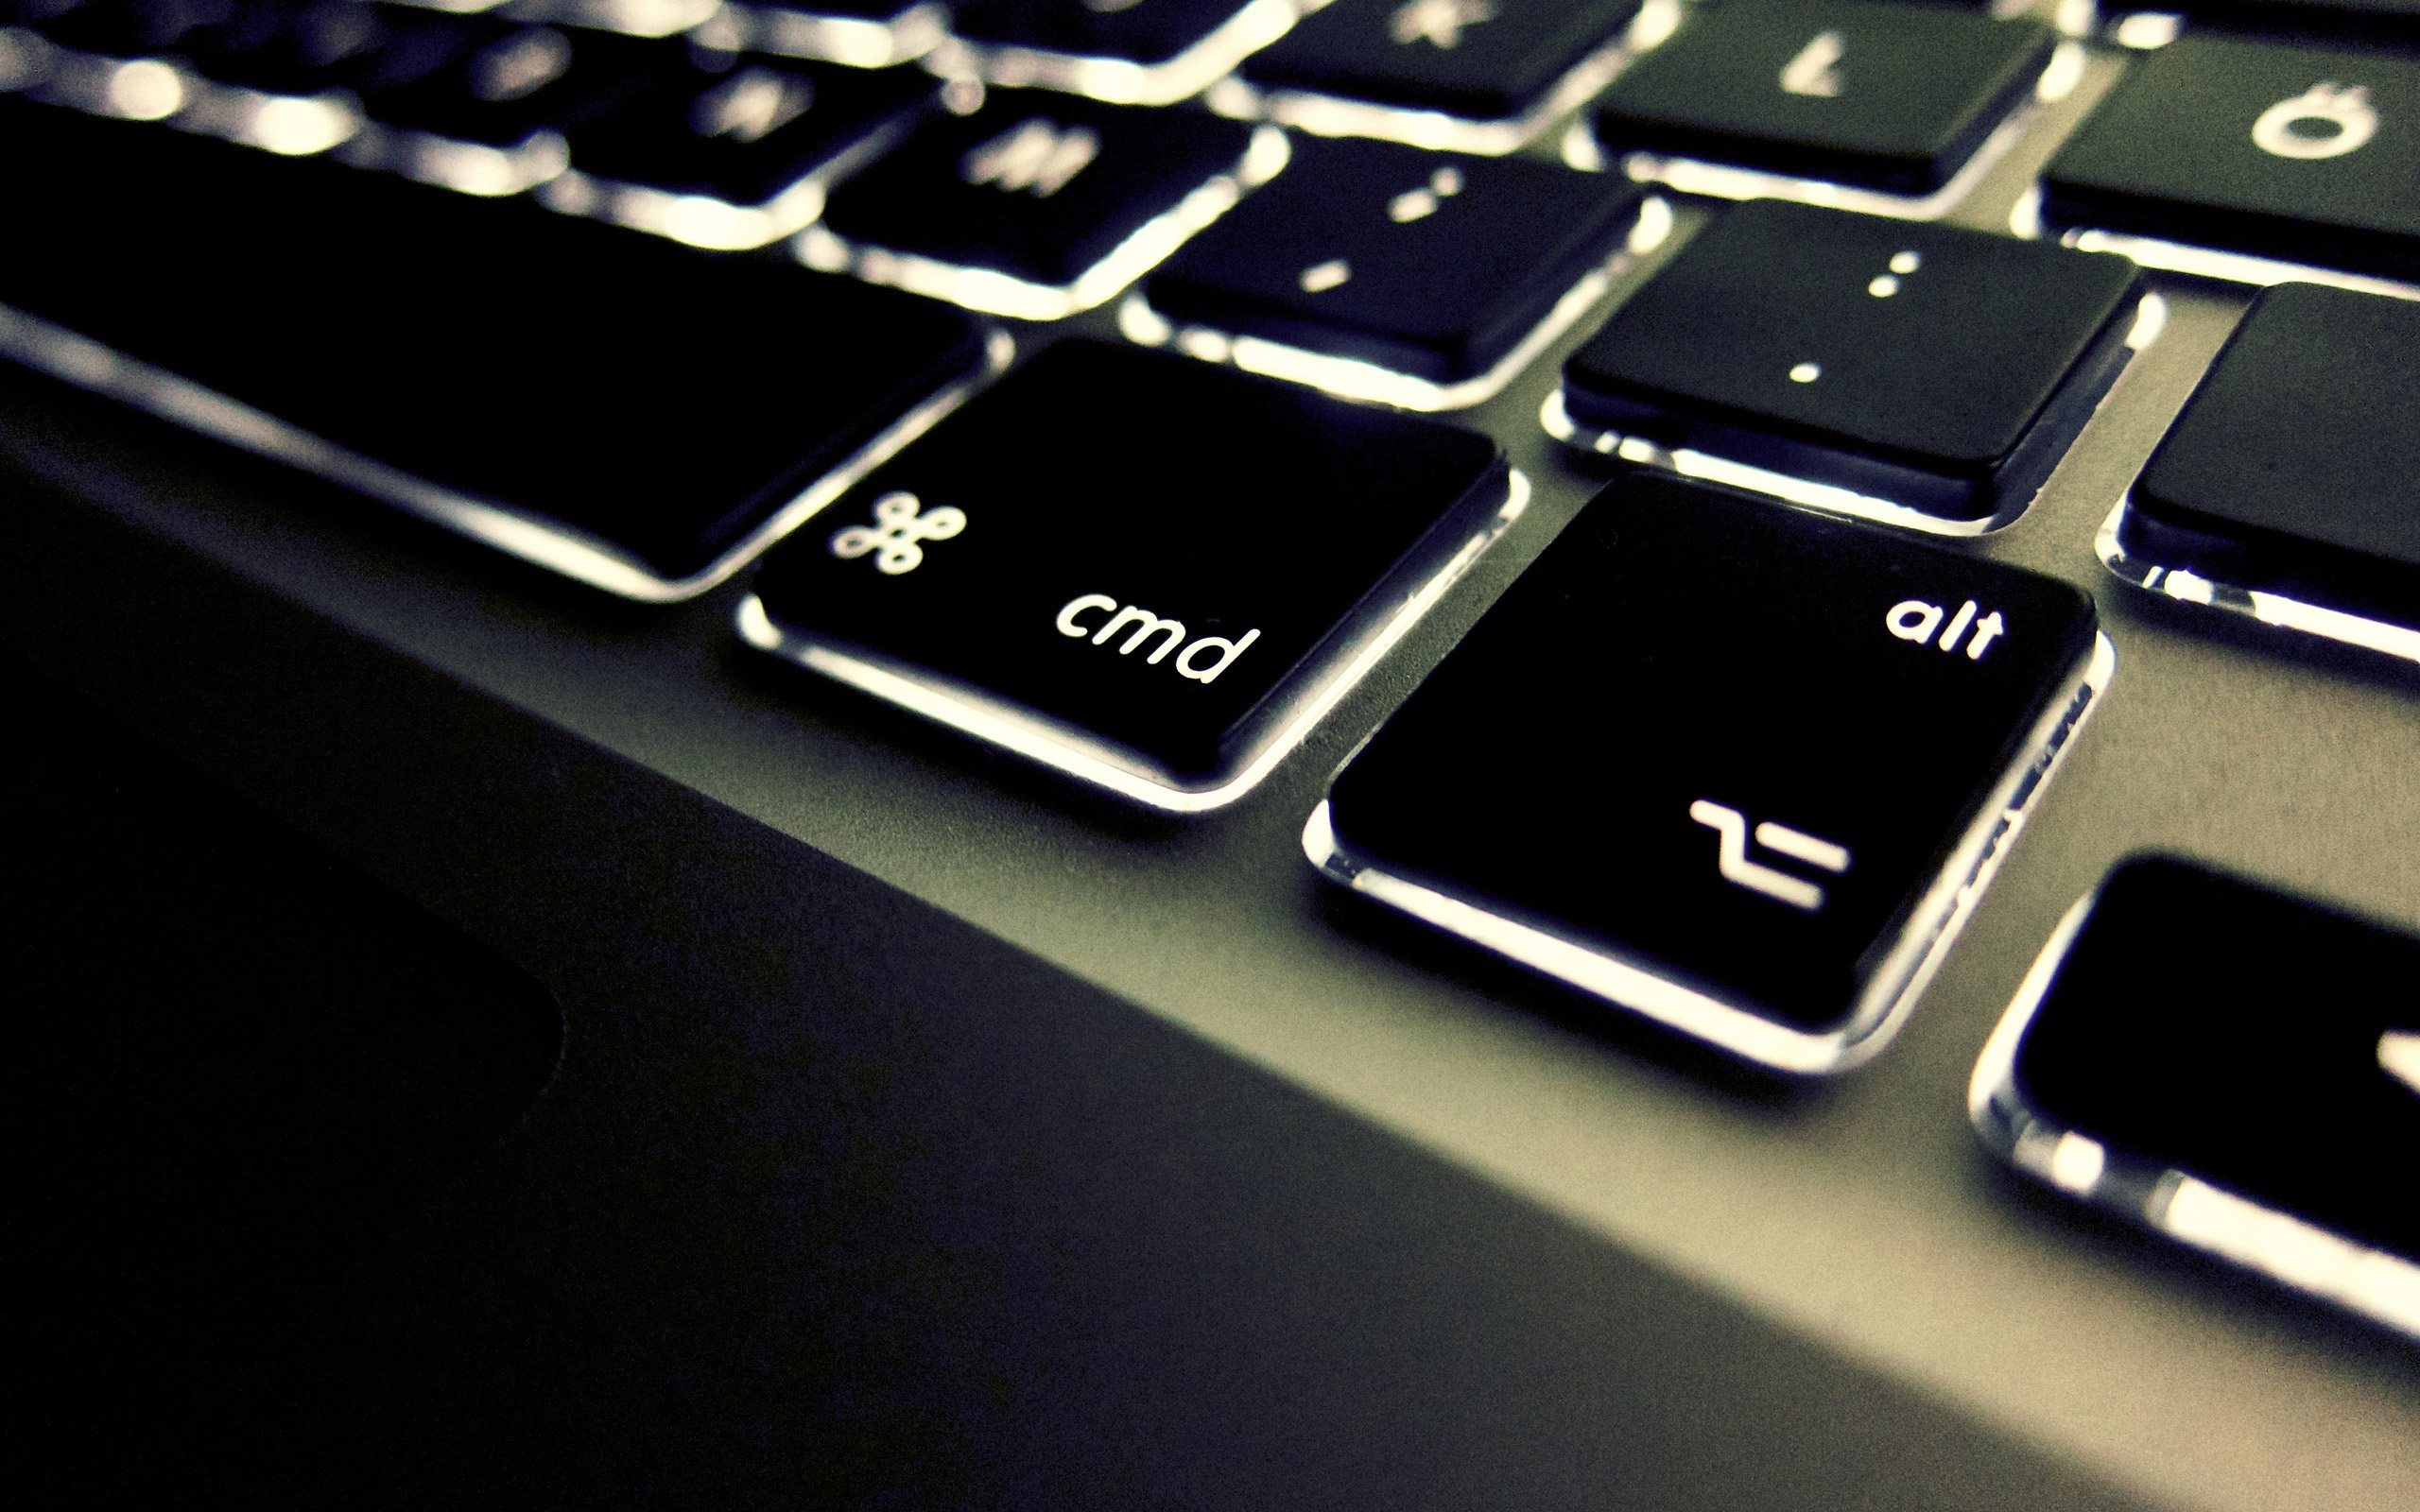 macbook-pro-keyboard-abstract-hd-wallpaper